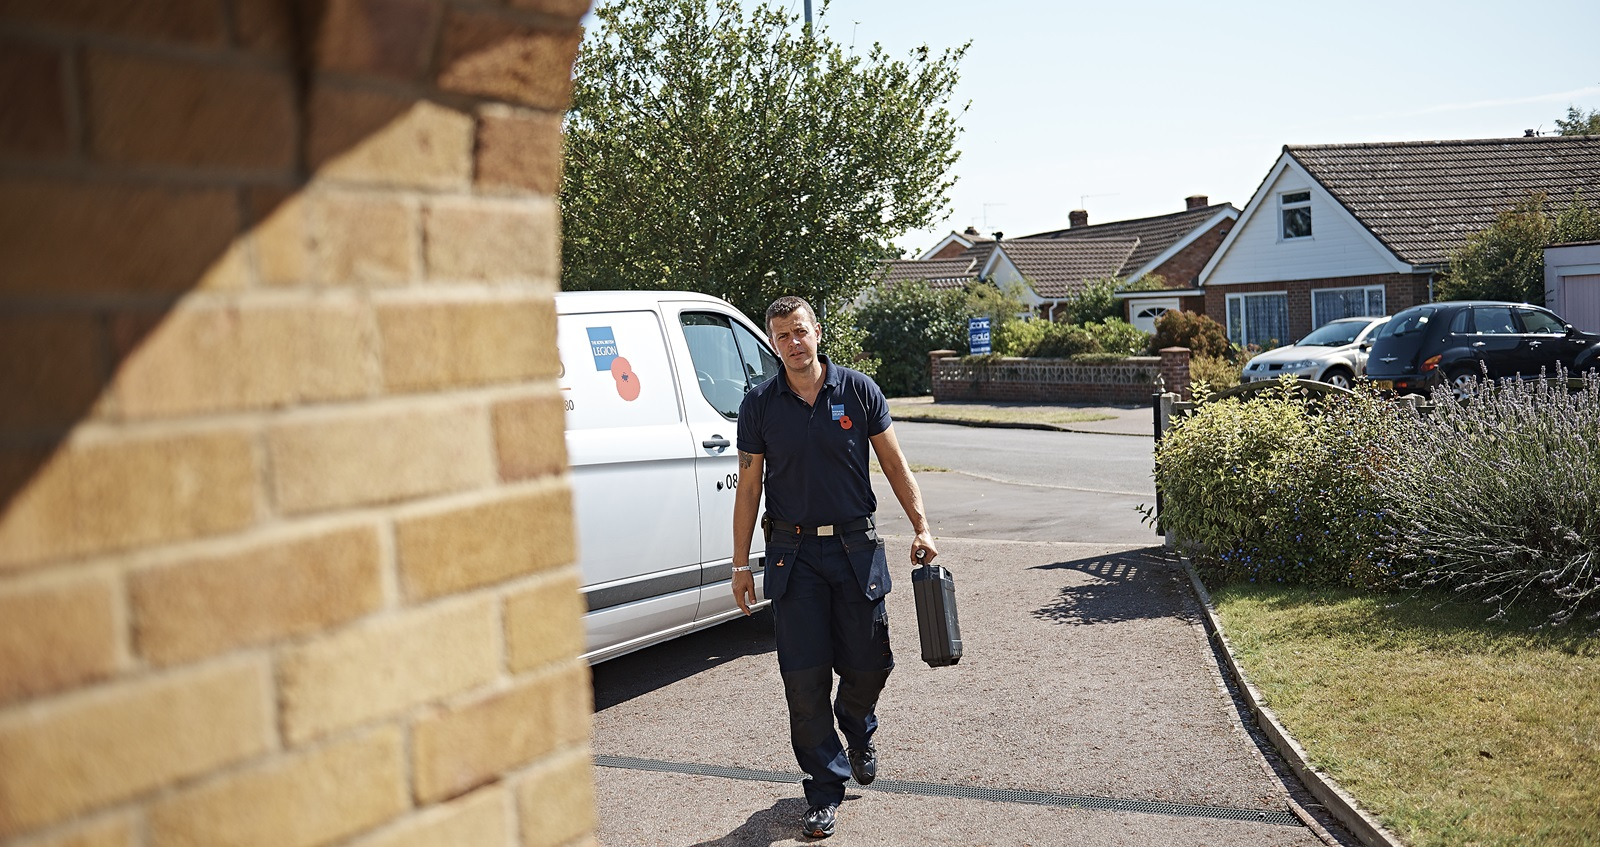 A member of Royal British Legion staff arriving to assess a veterans home